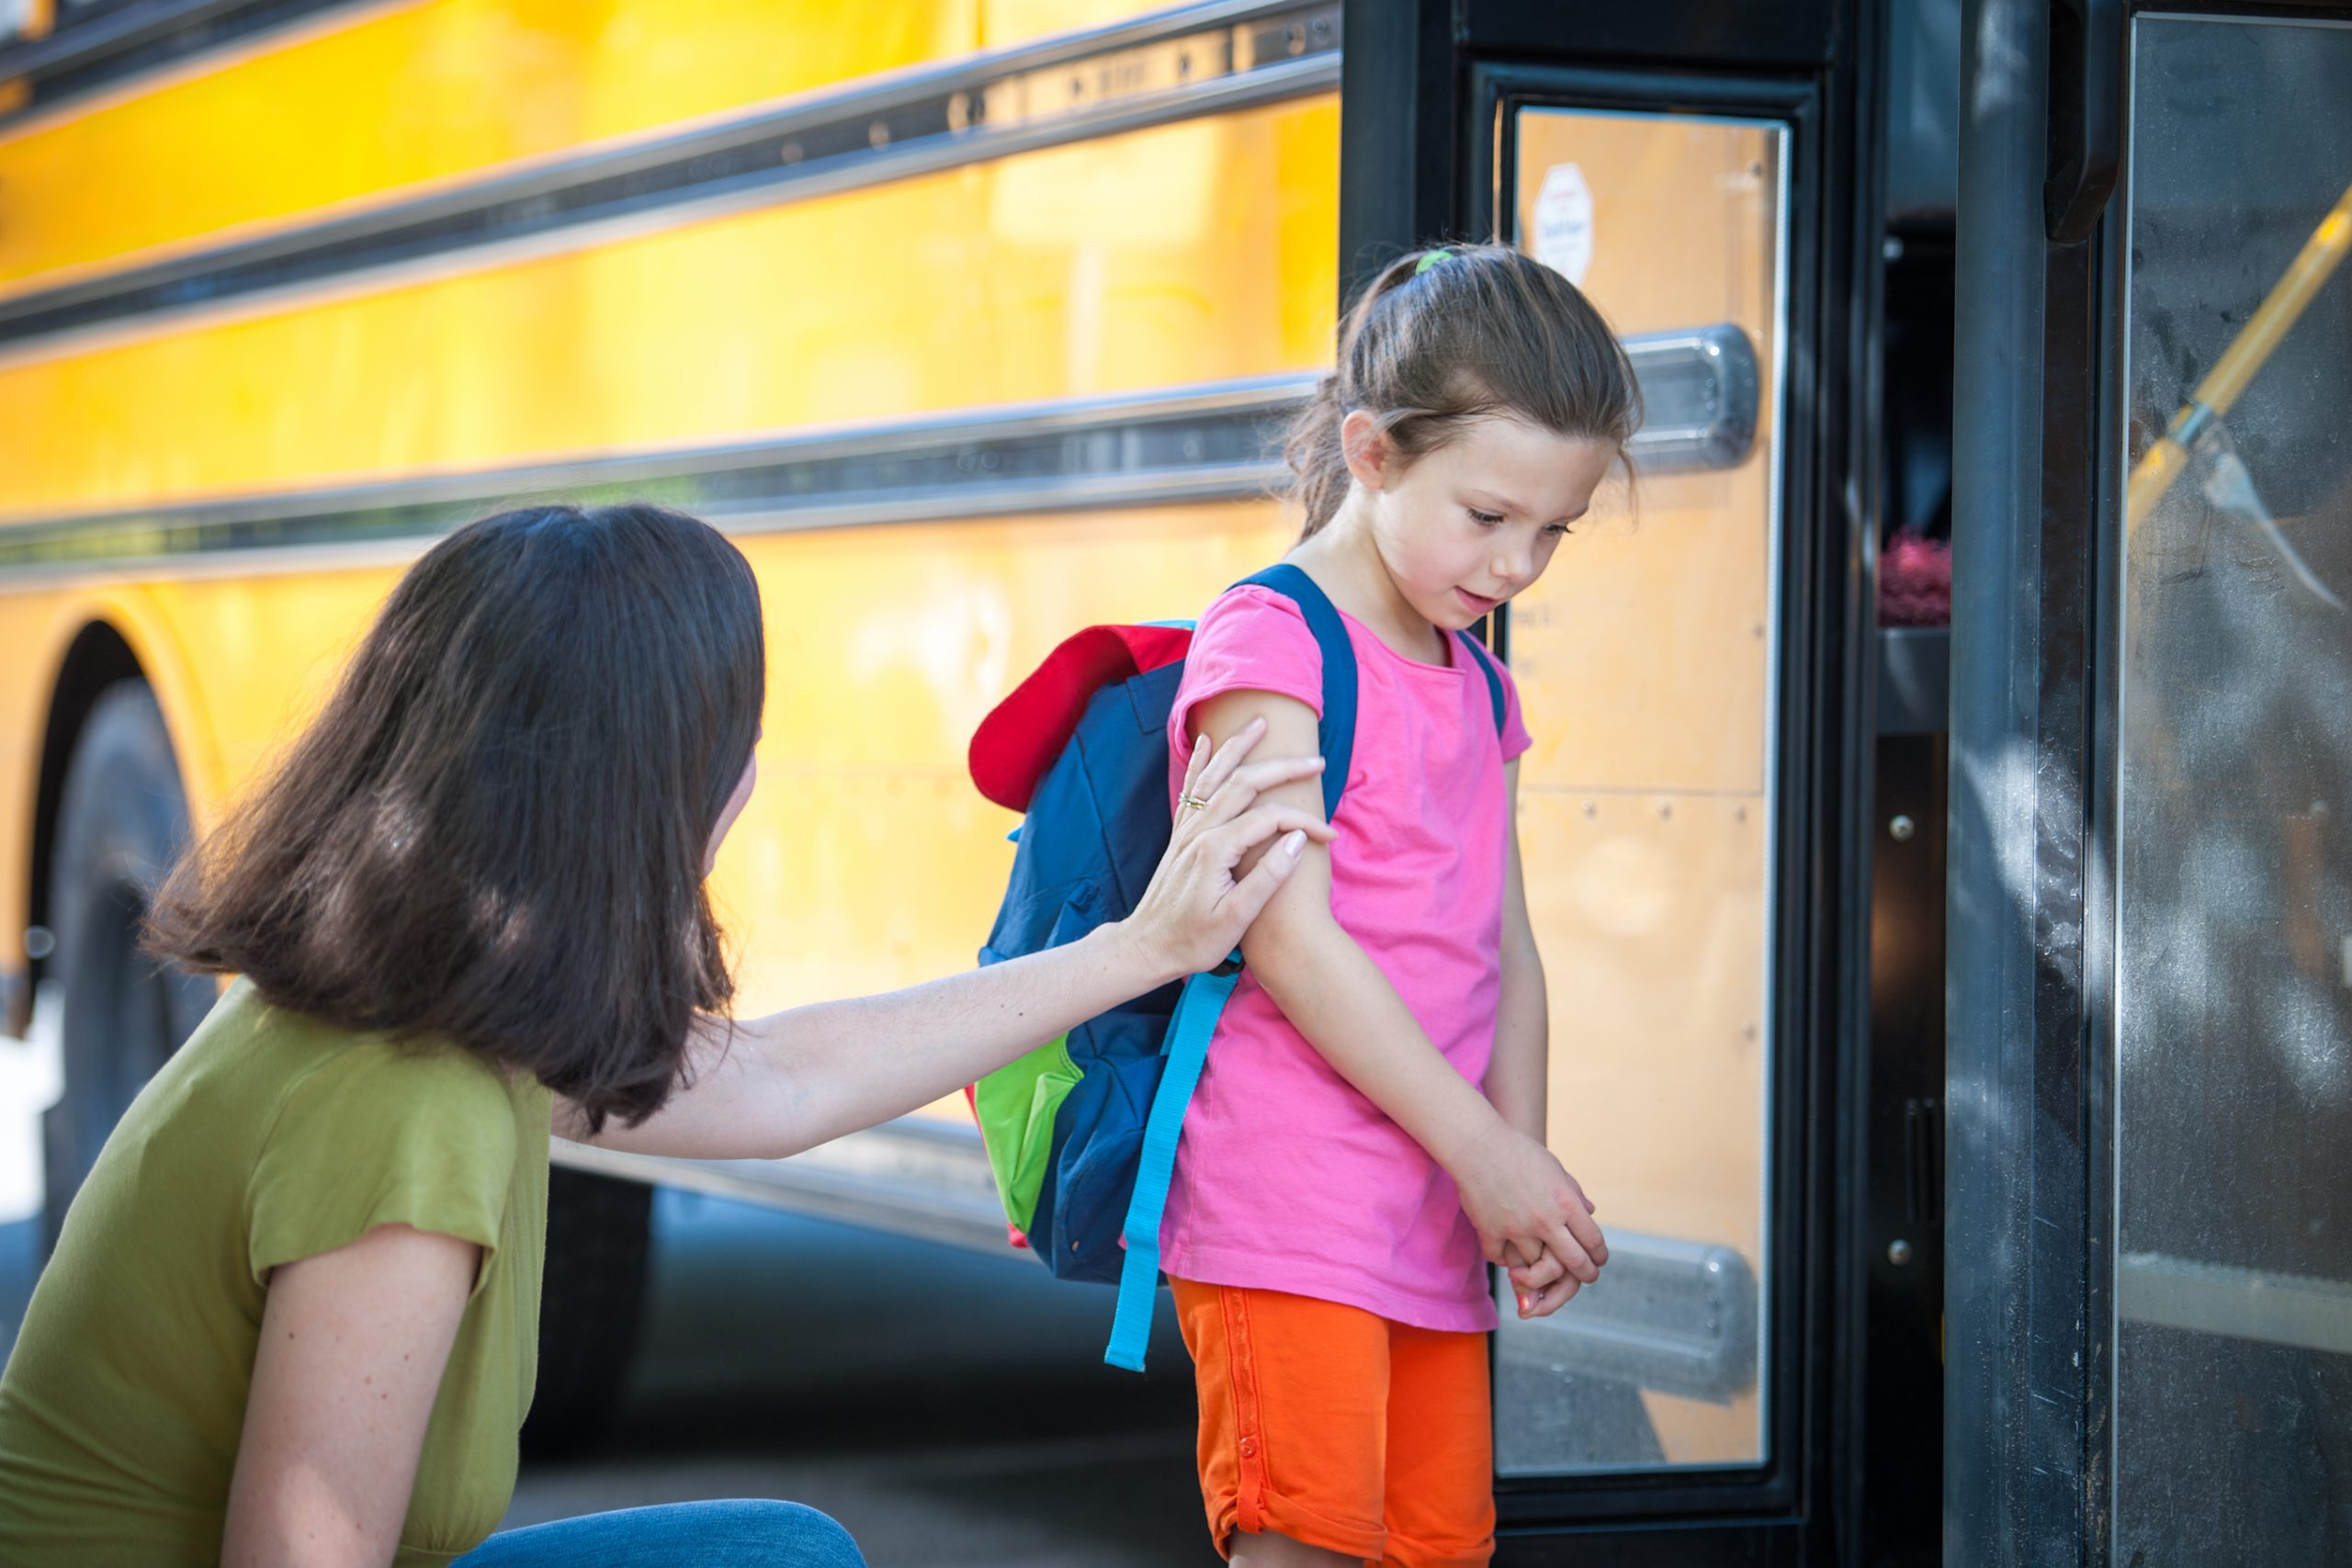 What to Do if Your Child is the Target of Bullying